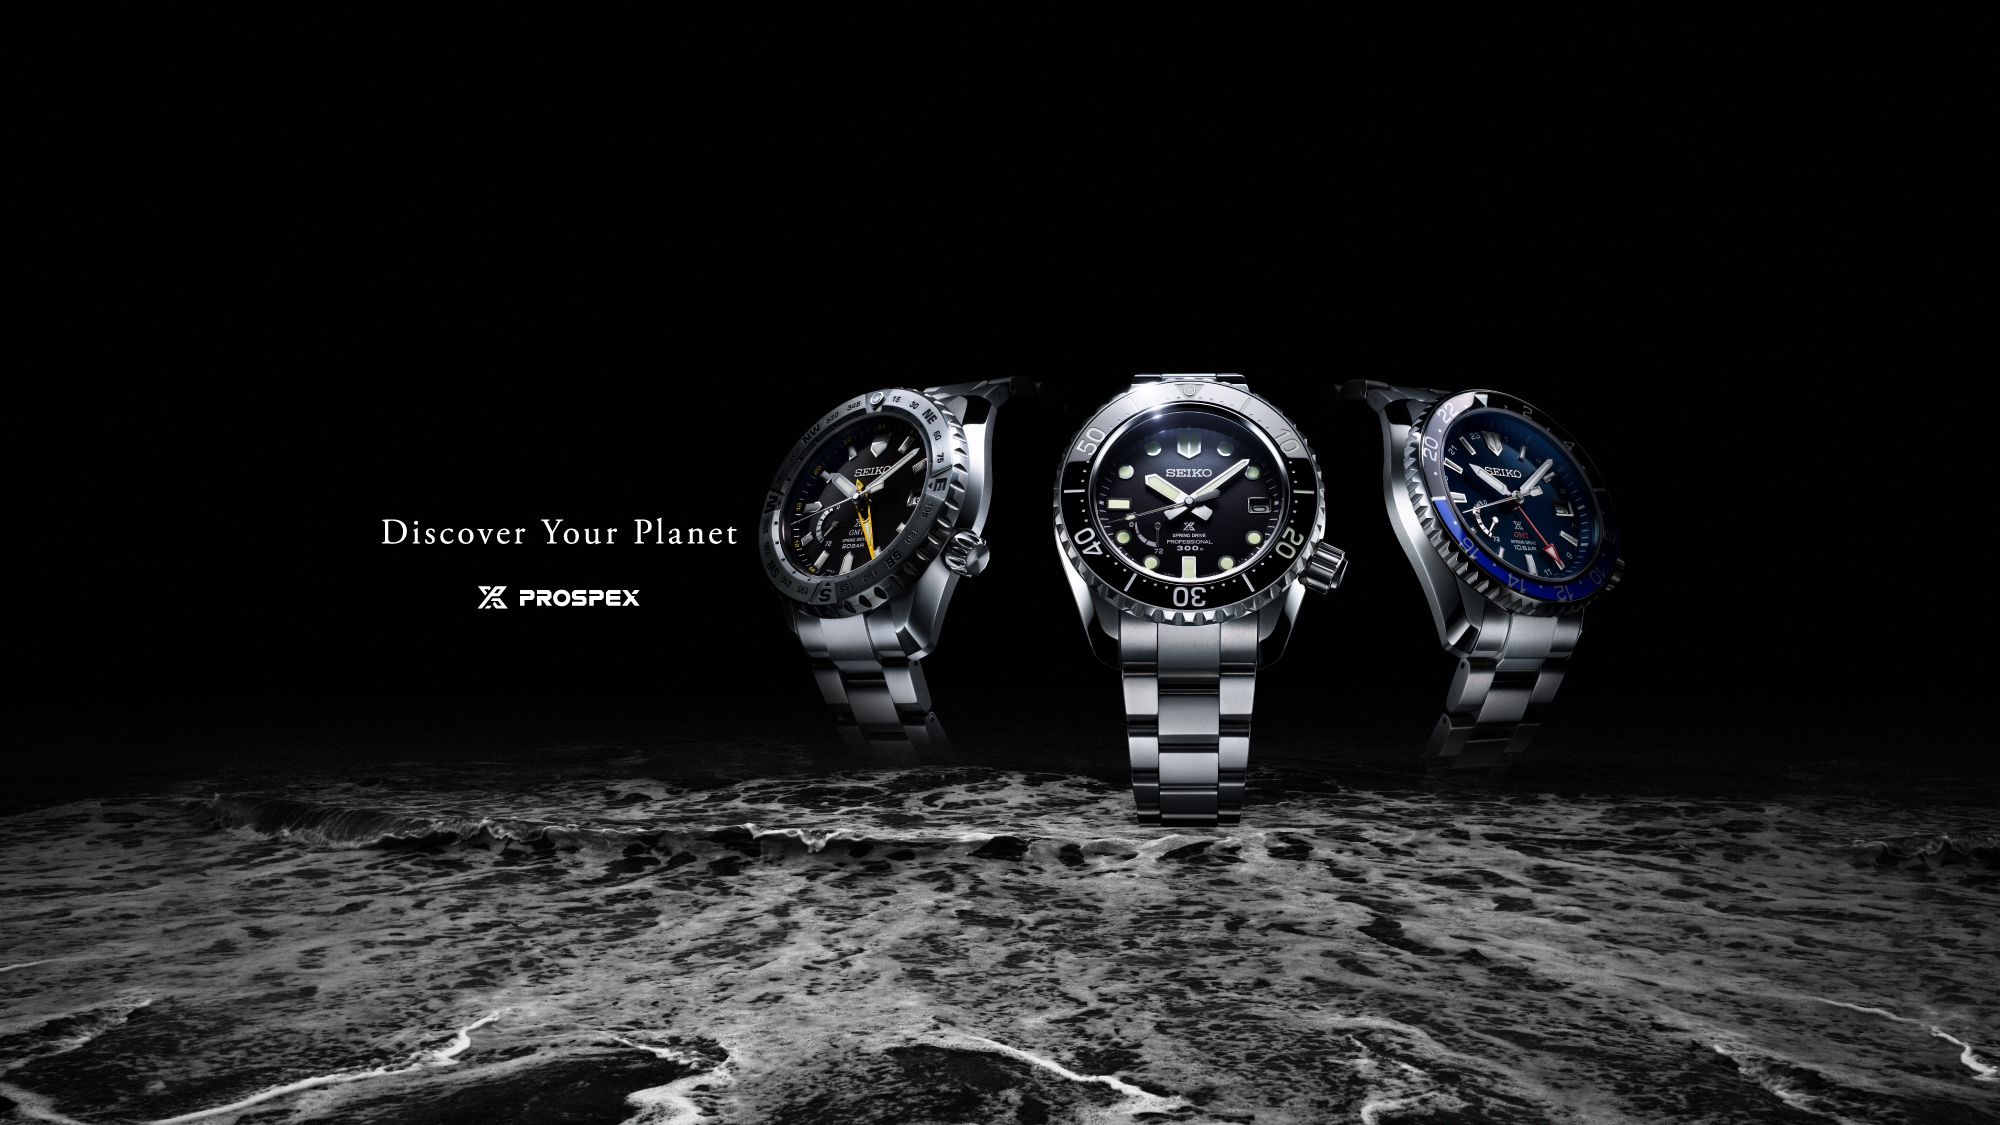 Discover Your Planet. Prospex